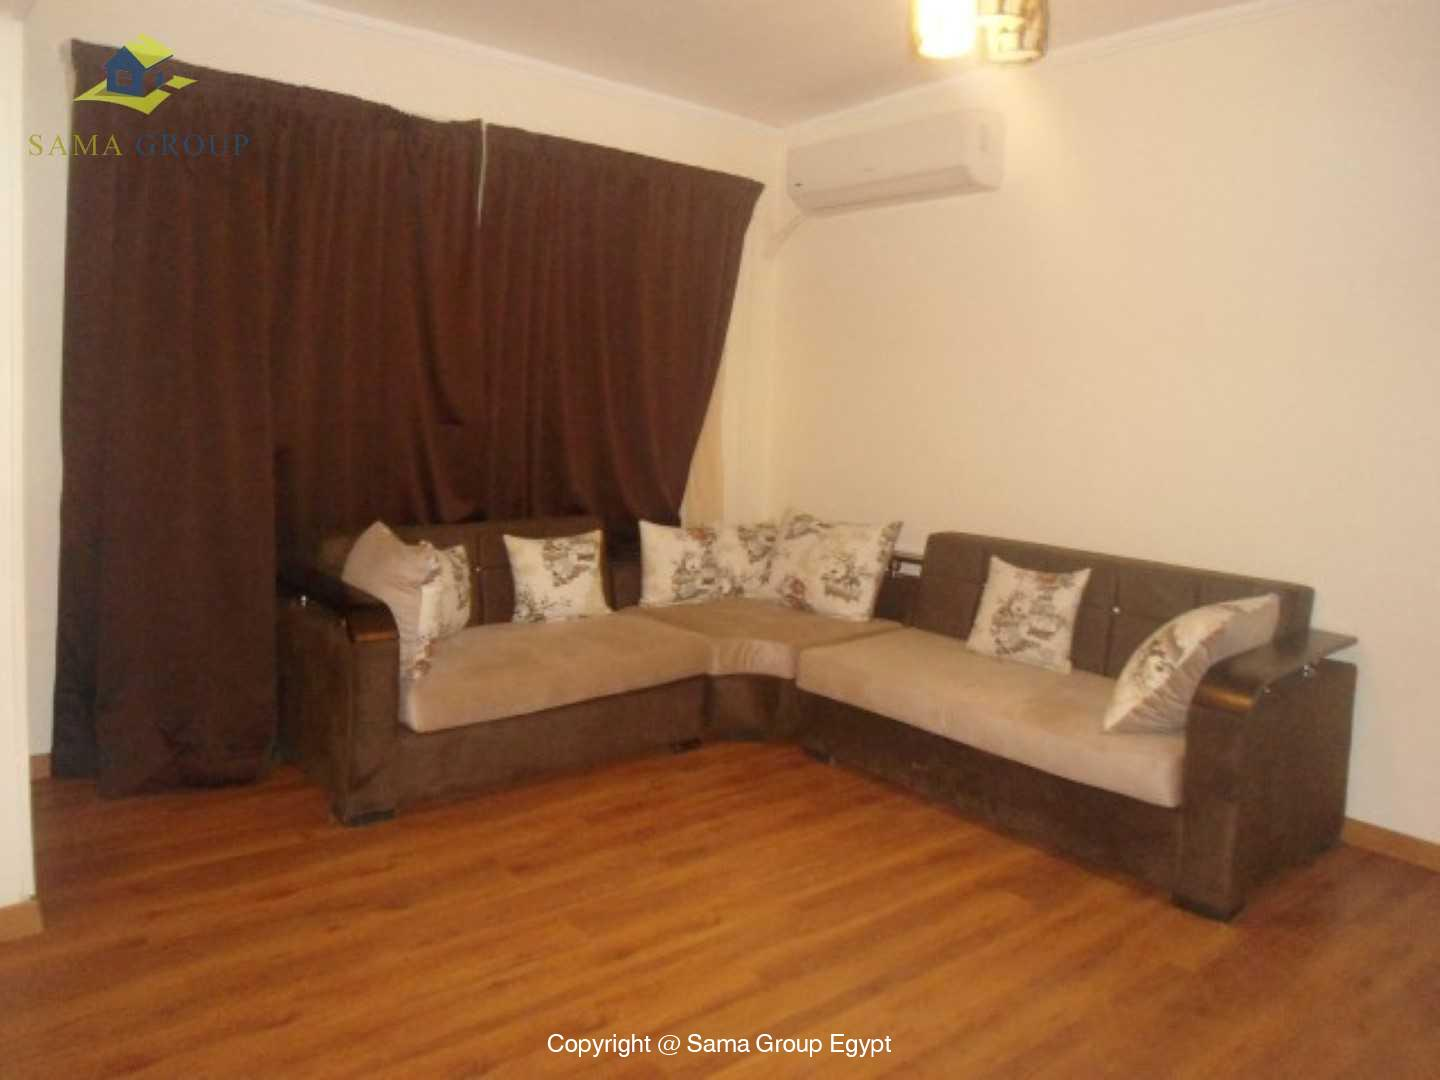 Apartment For Rent In Maadi Degla,Modern Furnished,Apartment NO #8